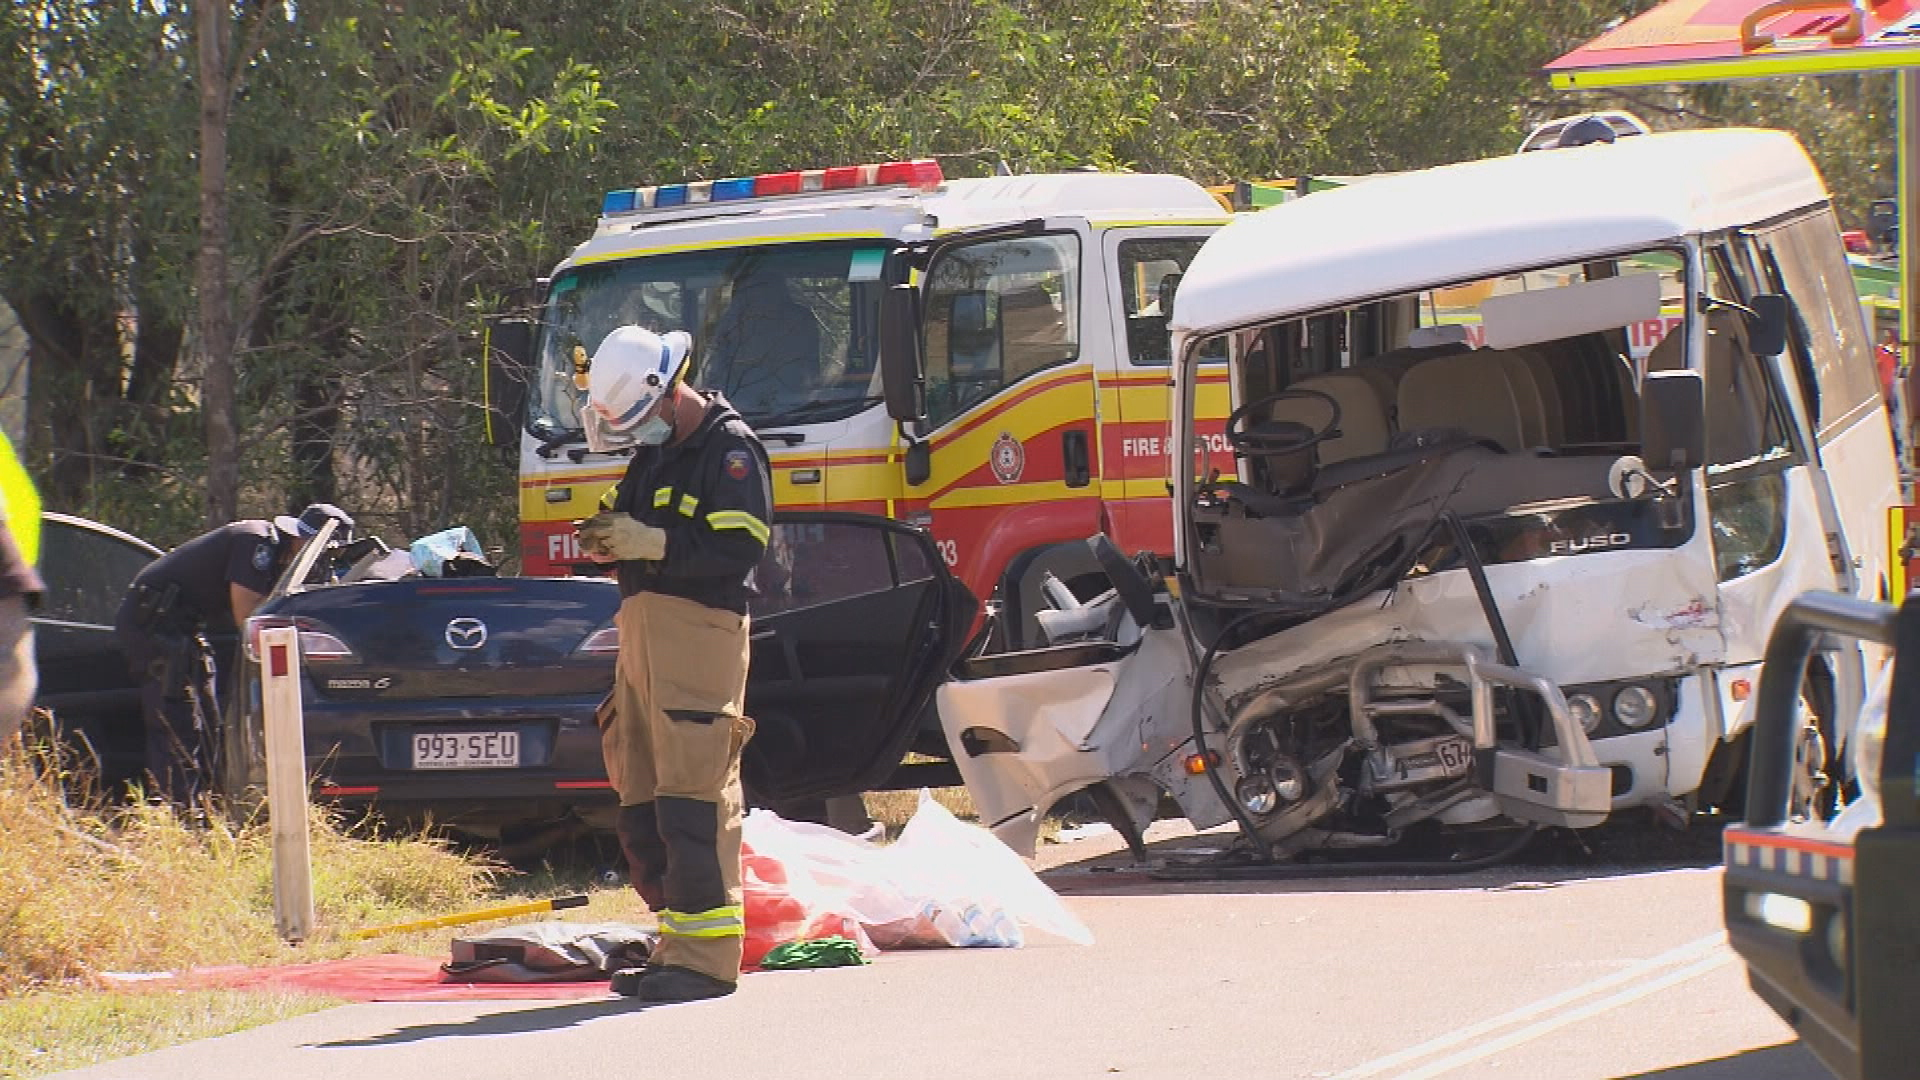 Both drivers have been airlifted to hospital in critical conditions.